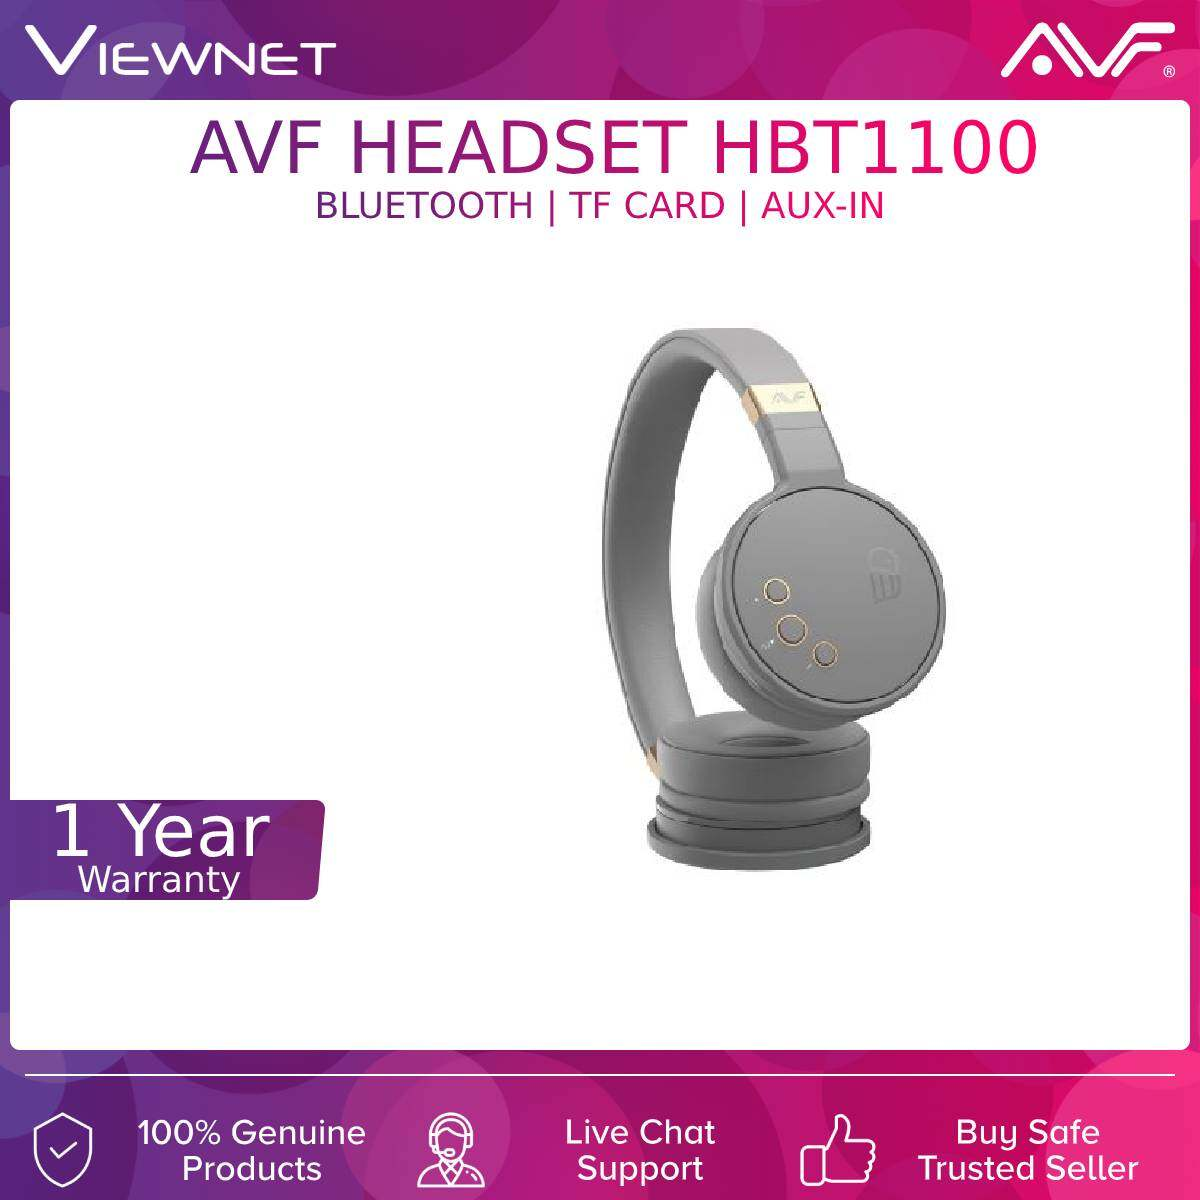 AVF Wireless Headsets HBT1100 with Deep Bass, Bluetooth, AUX-In Mode, TF Card Mode, FM Radio Mode, 4 Hours Battery Life